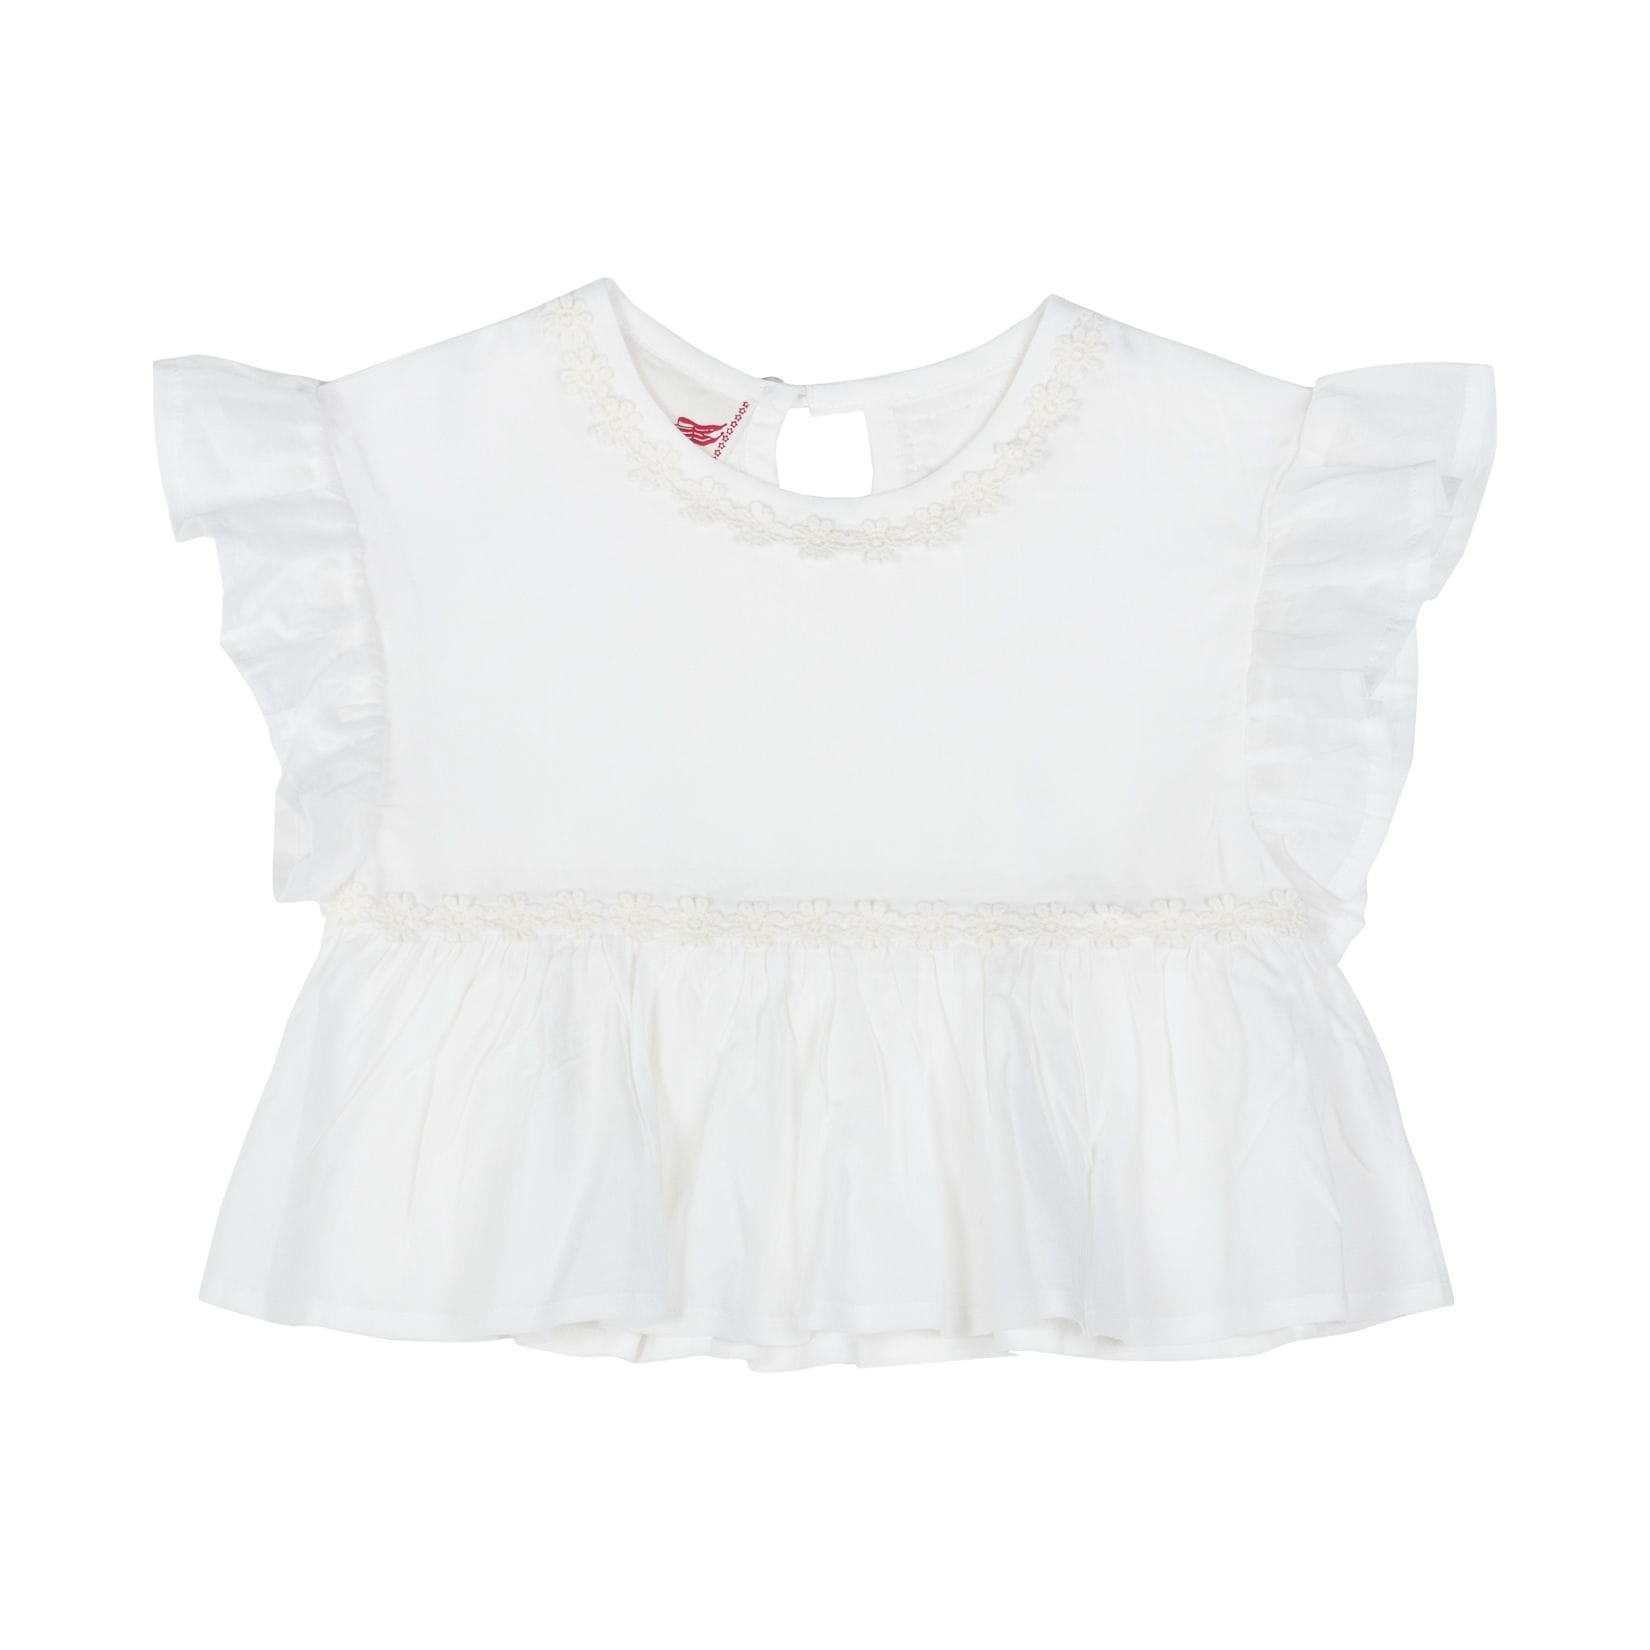 Little Wings by Paper Wings - Lace Trimmed Smock